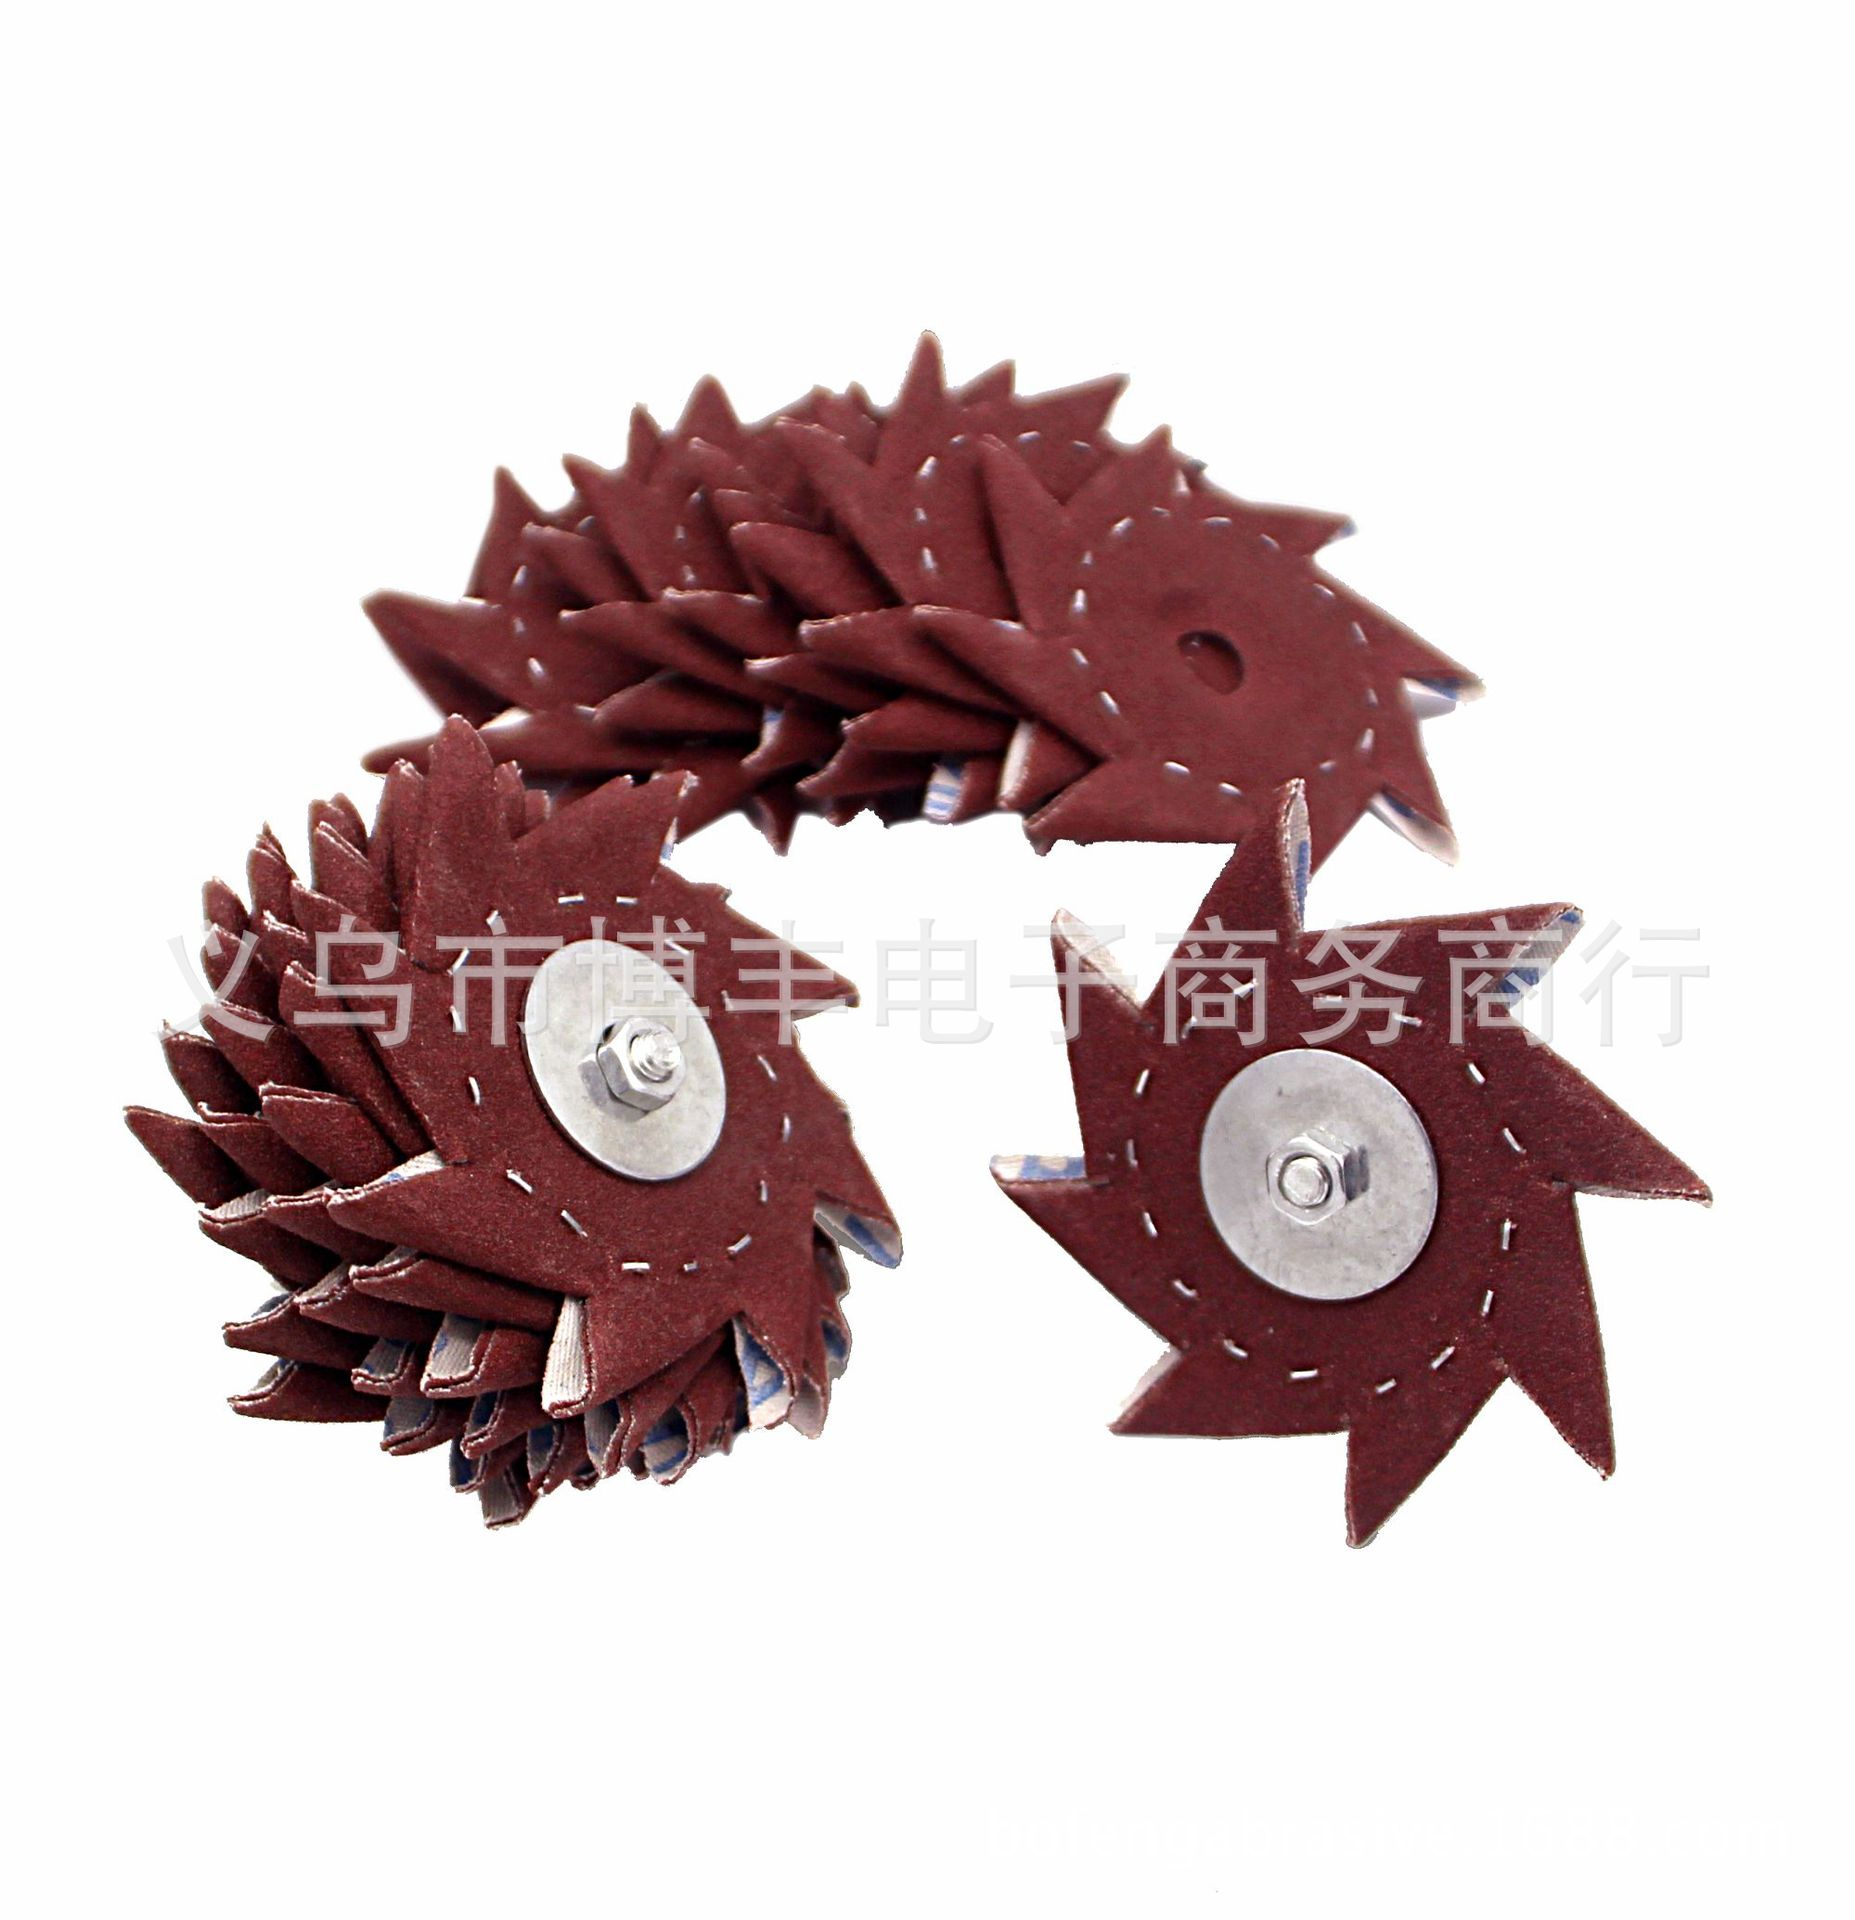 Octagonal Sandpaper Furniture Root Carving Wood Sculpture Slot Polishing Octagonal Abrasive Band Eight Sandpaper Velcro Woodwork